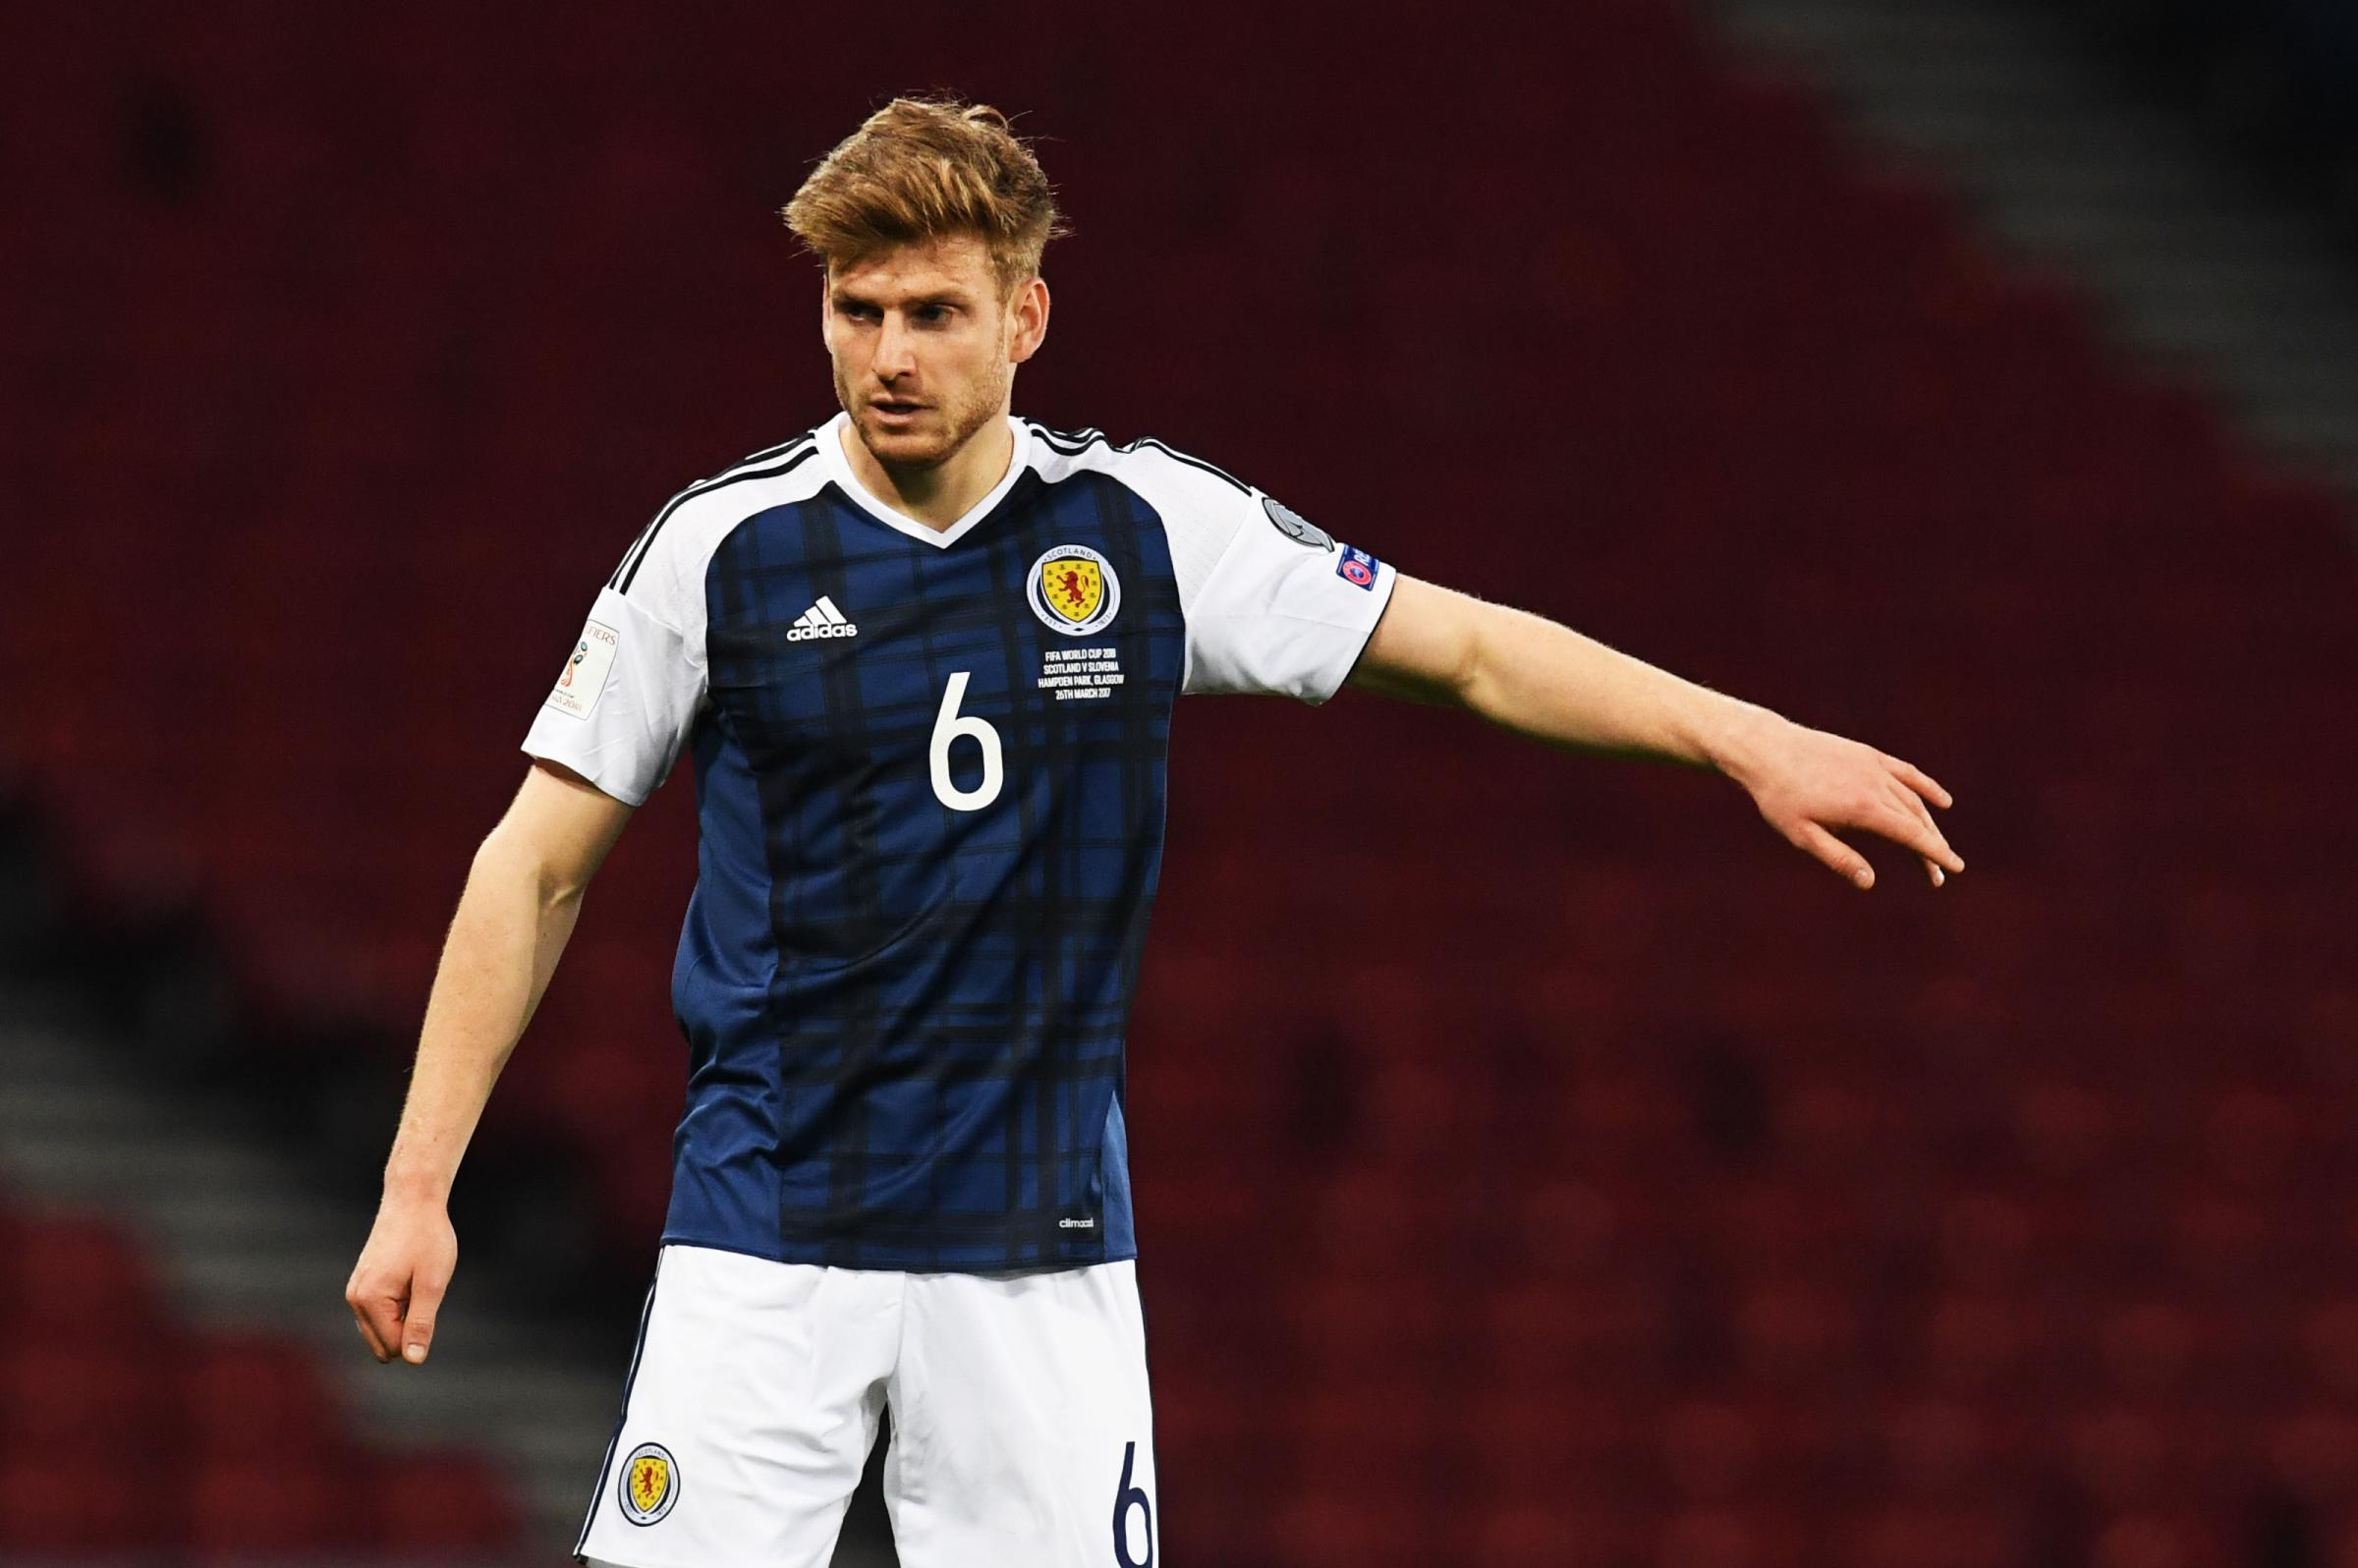 Celtic's Stuart Armstrong says starring role in Scotland debut was a proud moment for the family